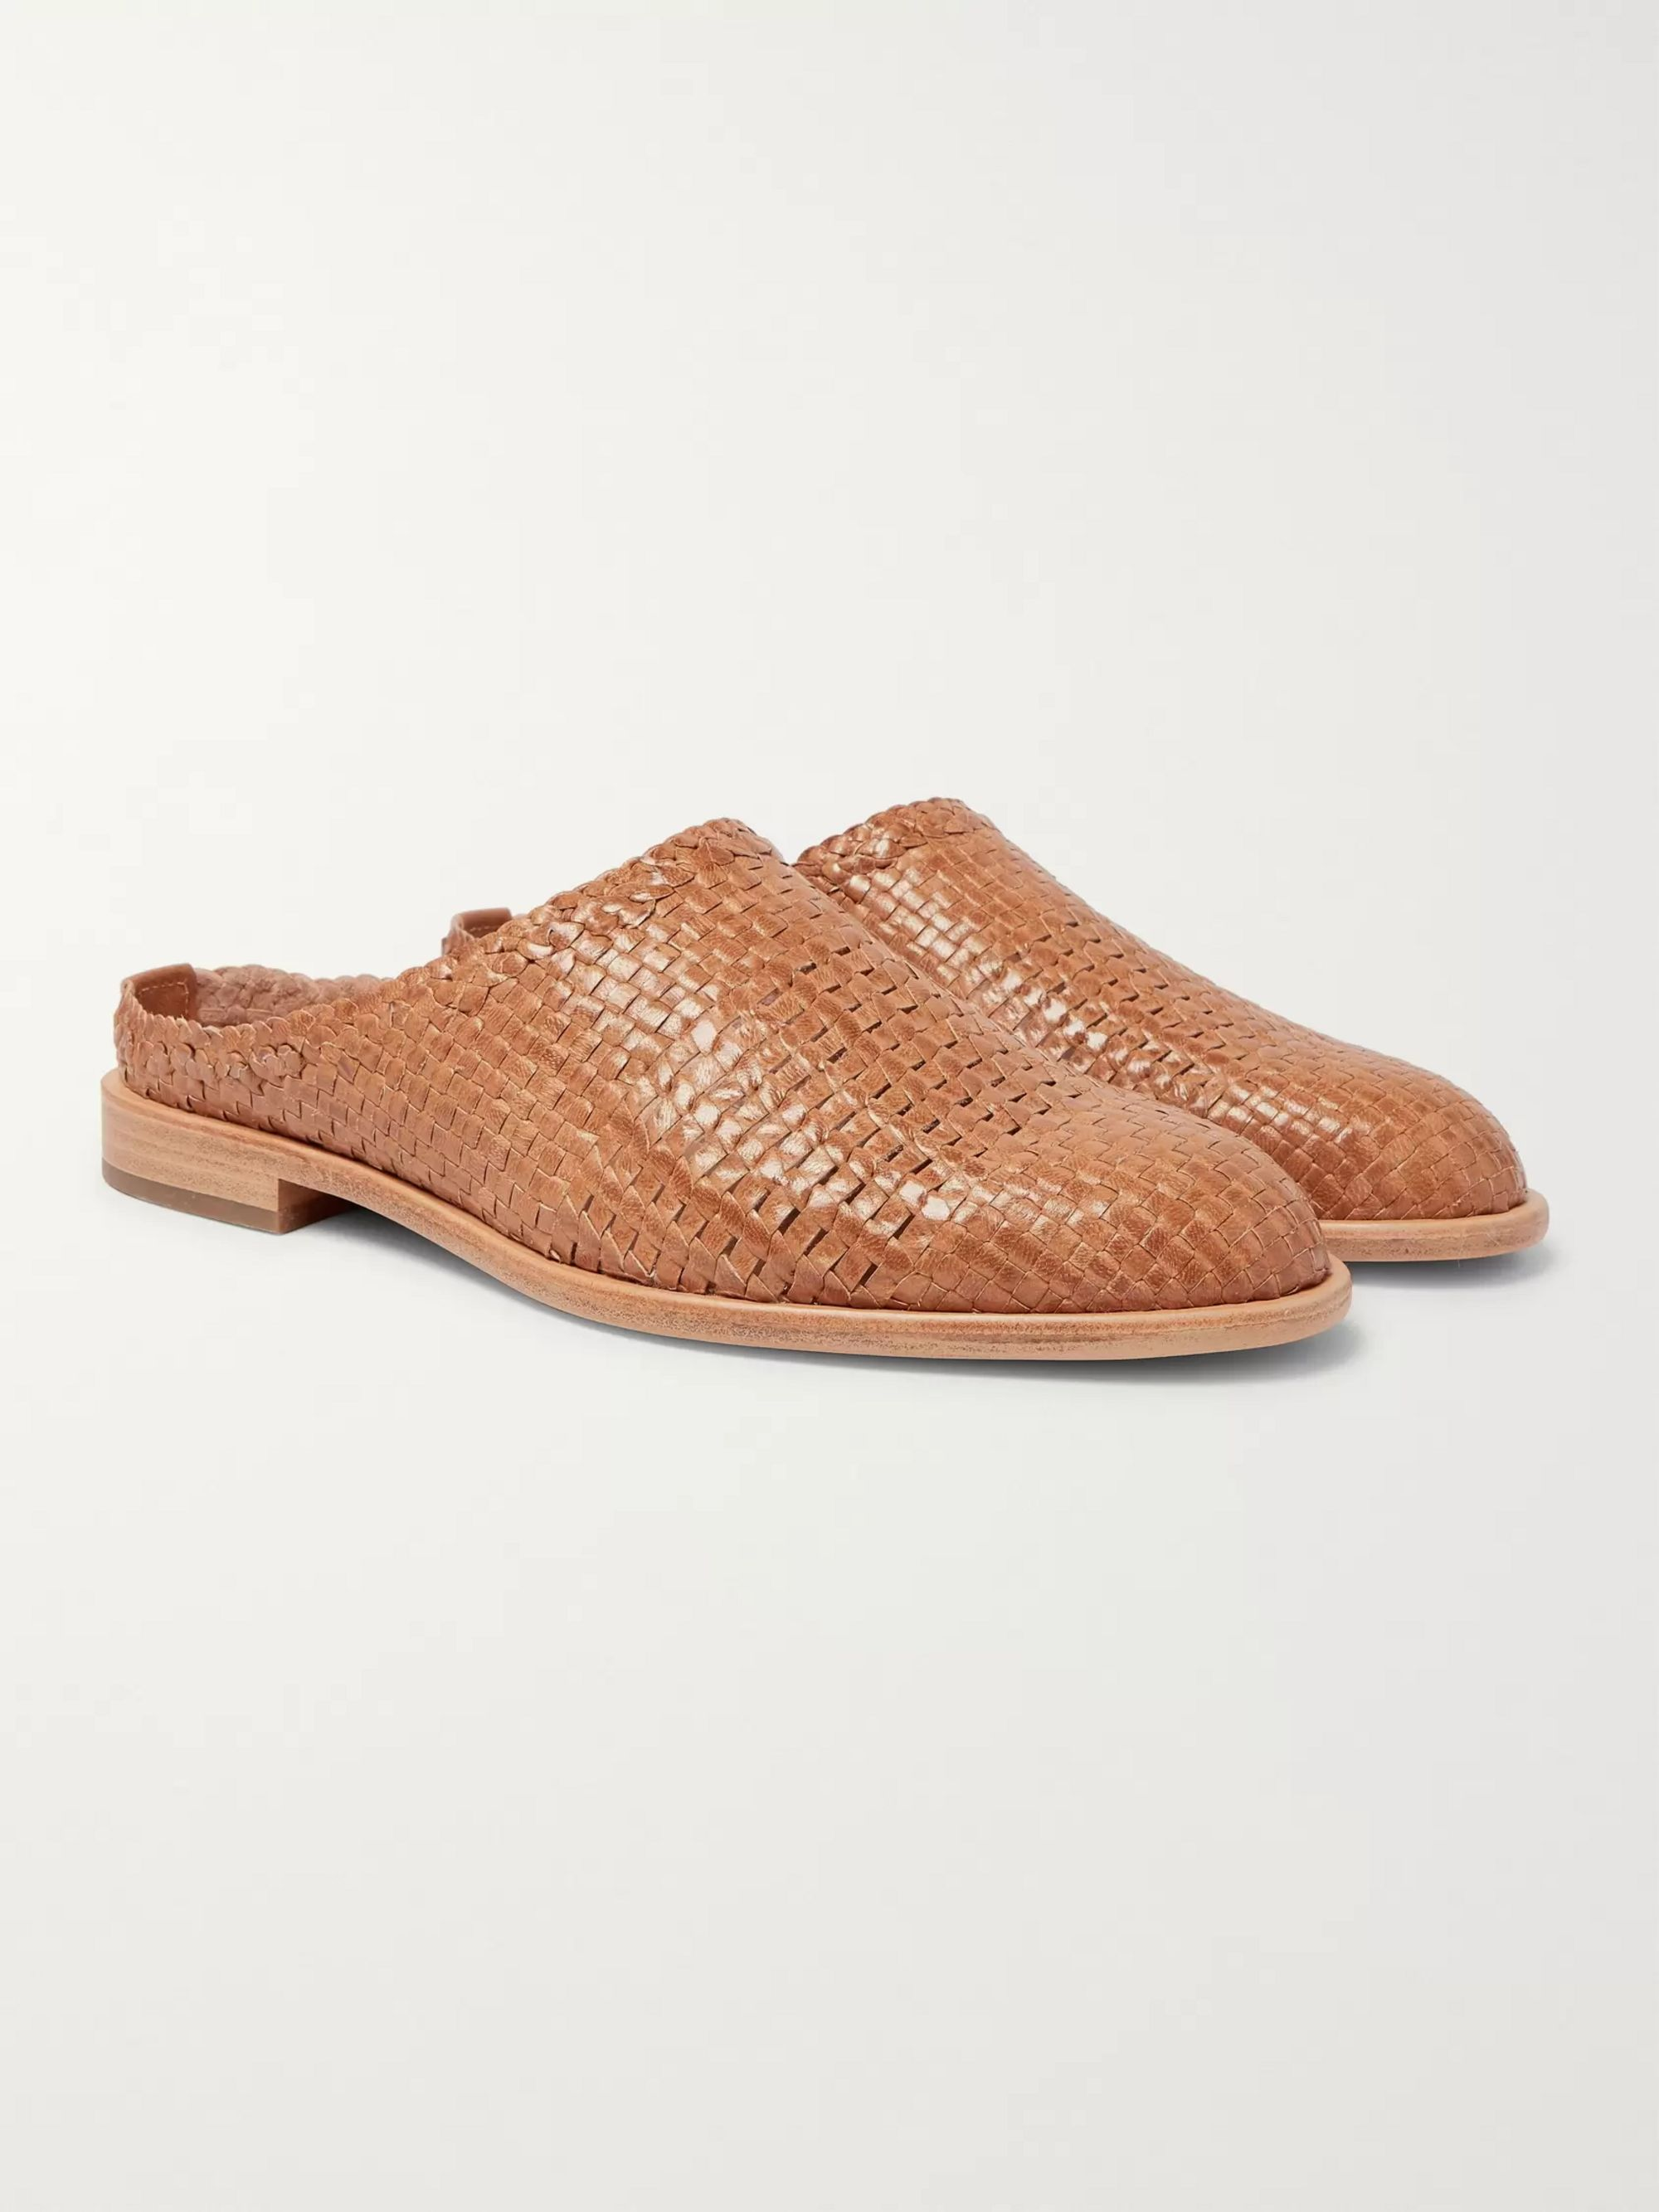 Woven Leather Loafers by Hender Scheme